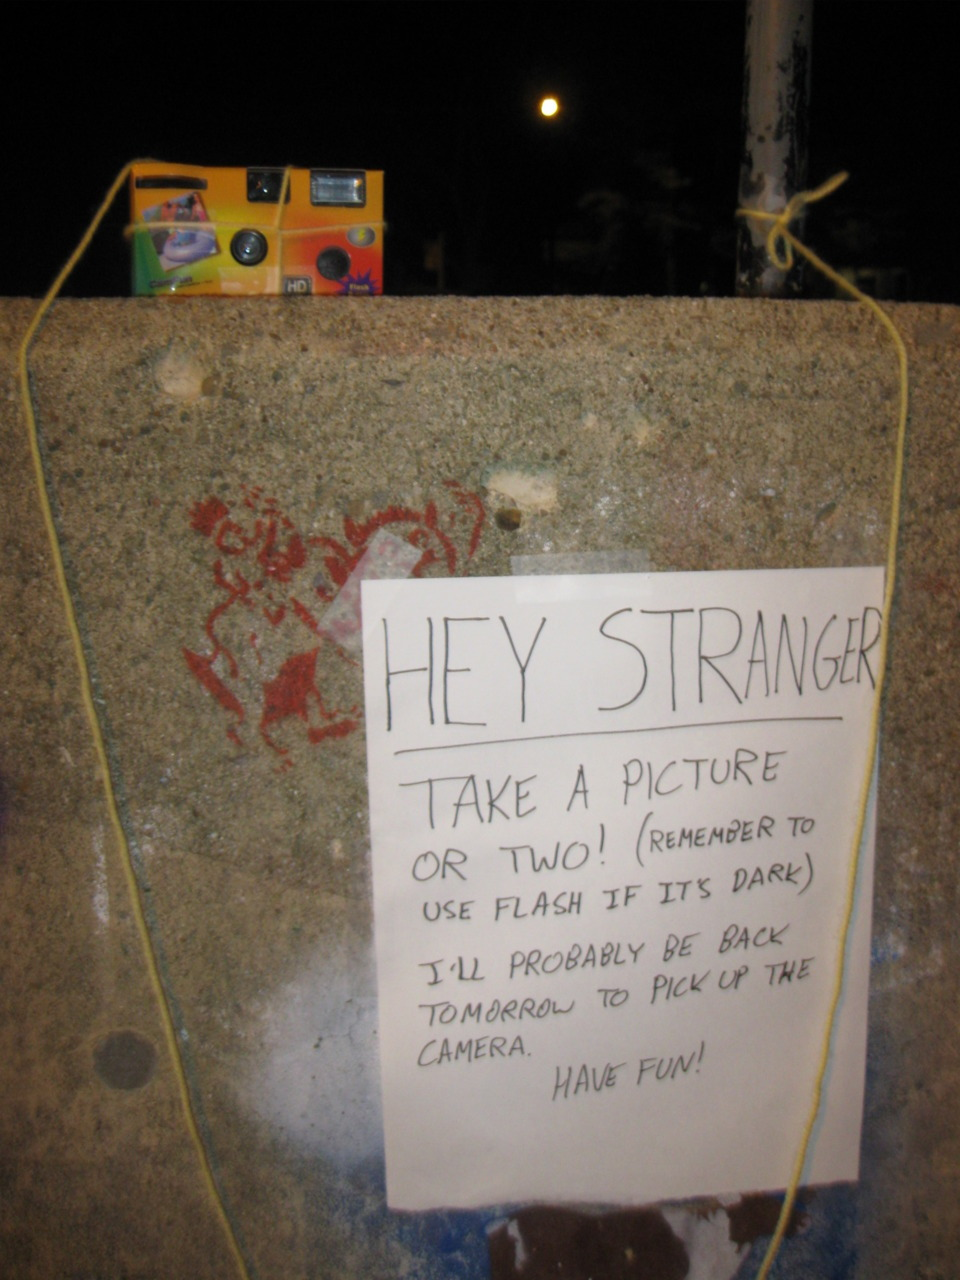 Last year I tied a disposable camera to a fence and left a little sign telling people to take pictures.  This is part 1 of the results. [Part 2] [Part 3] (includes two pixelated testicle shots) This idea was stolen from The Plug, a fantastic online zine that you should definitely peruse.